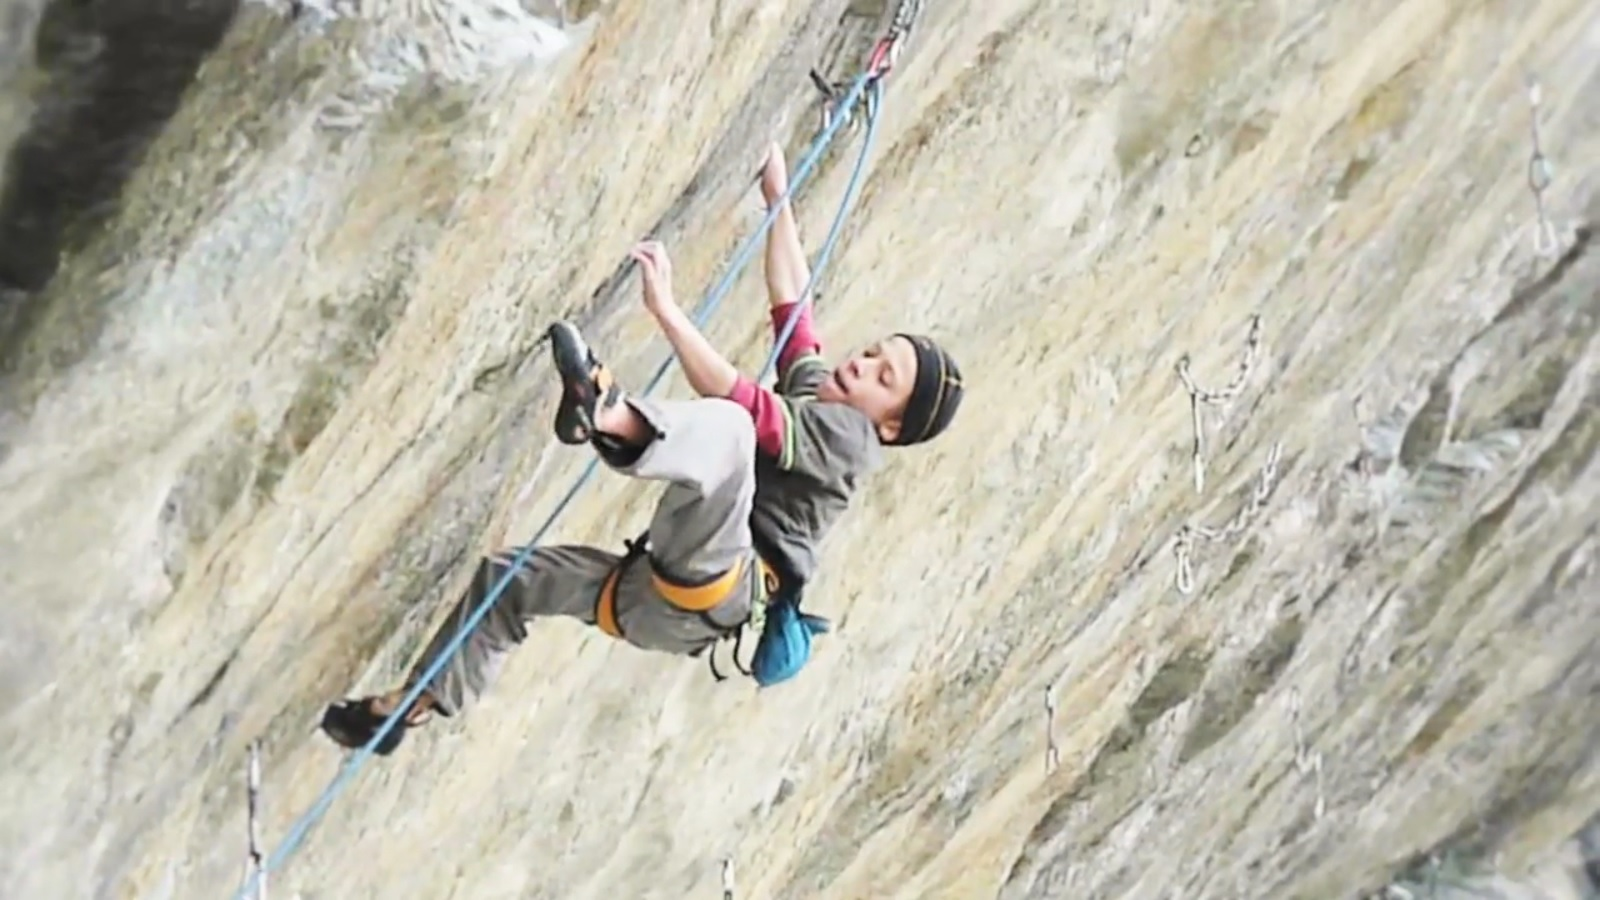 Rock Climbing Accident Teenager Studying To Be Physiotherapist